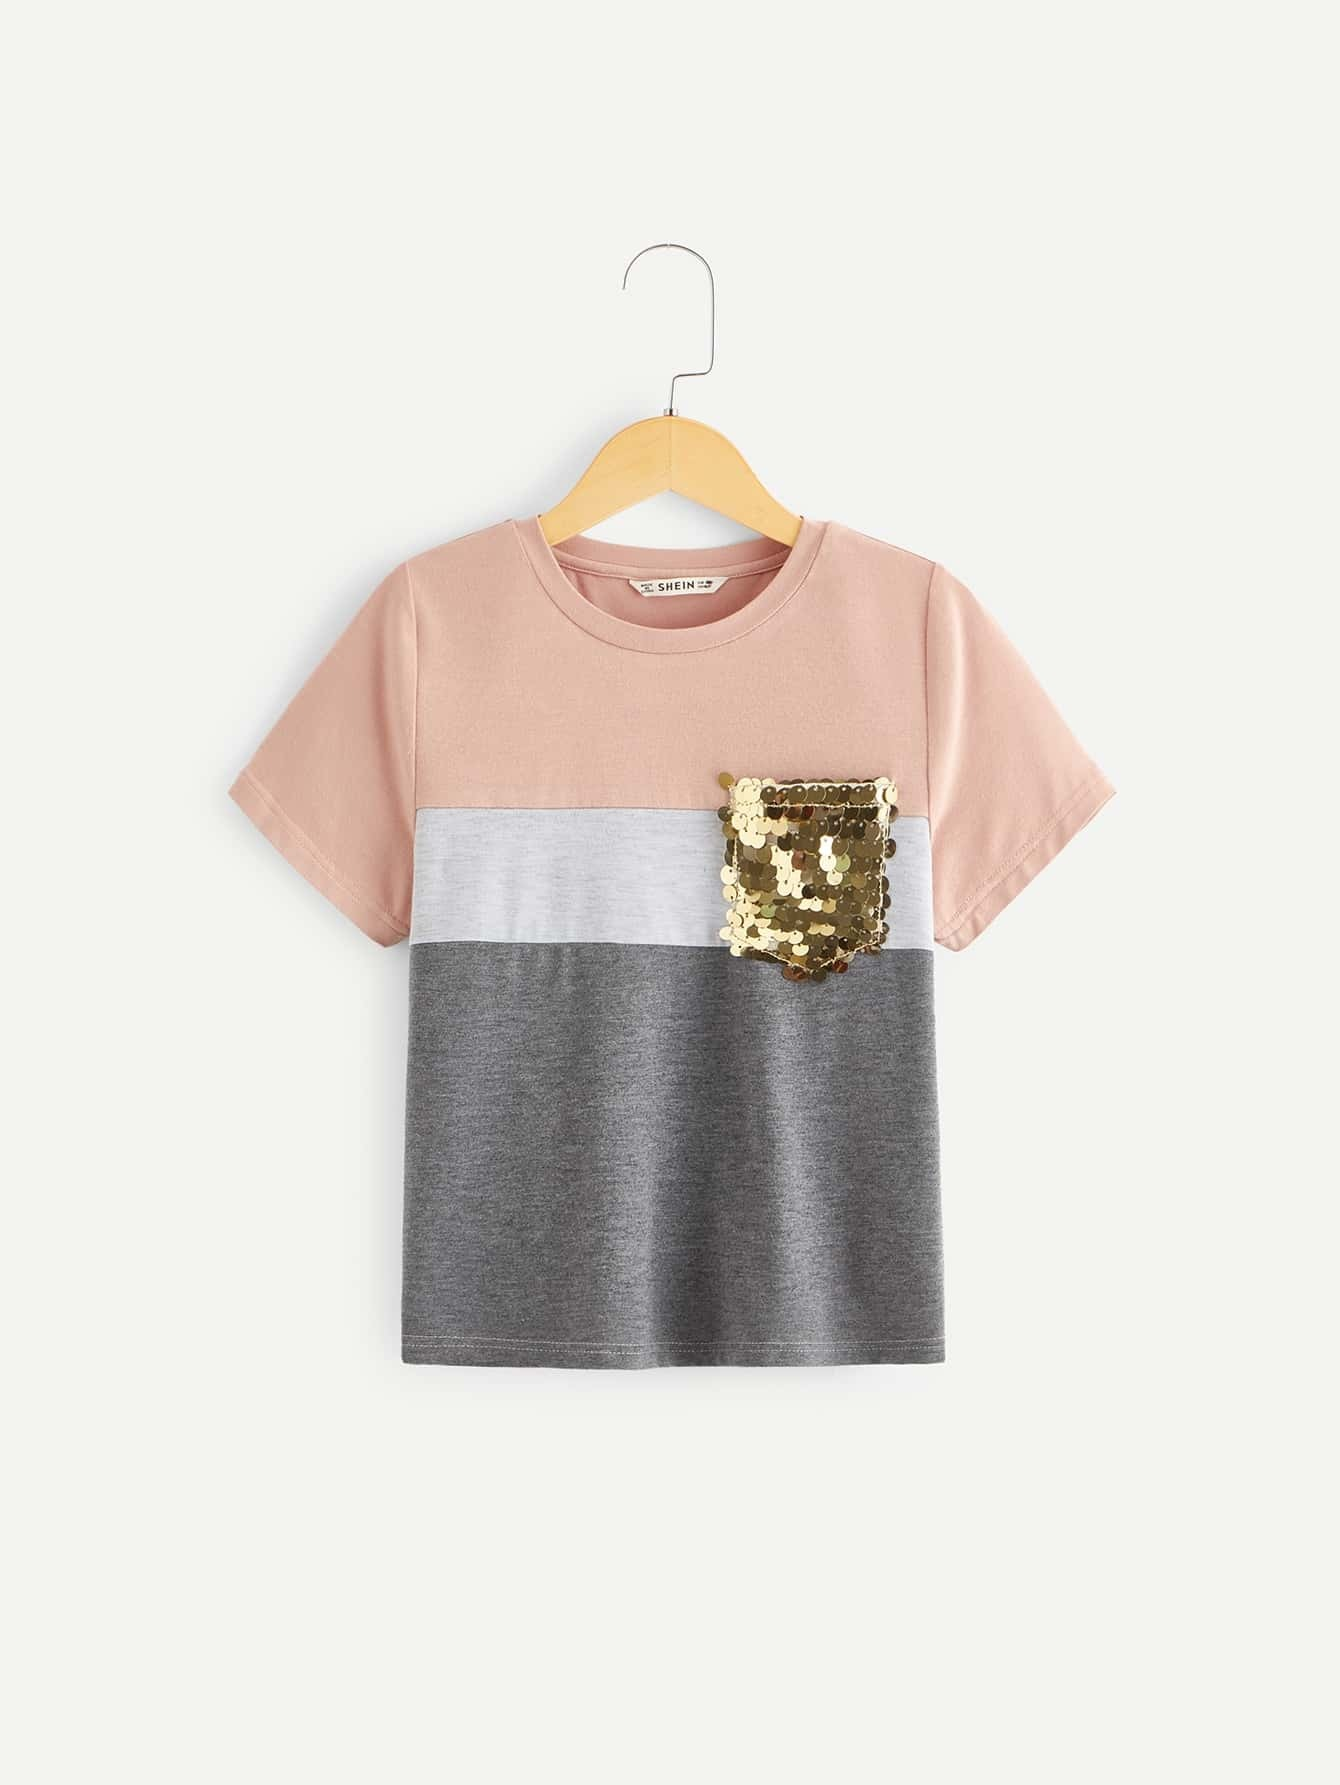 95d8c72238a7 Girls Sequin Patched Colorblock Tee - shein.com - imall.com